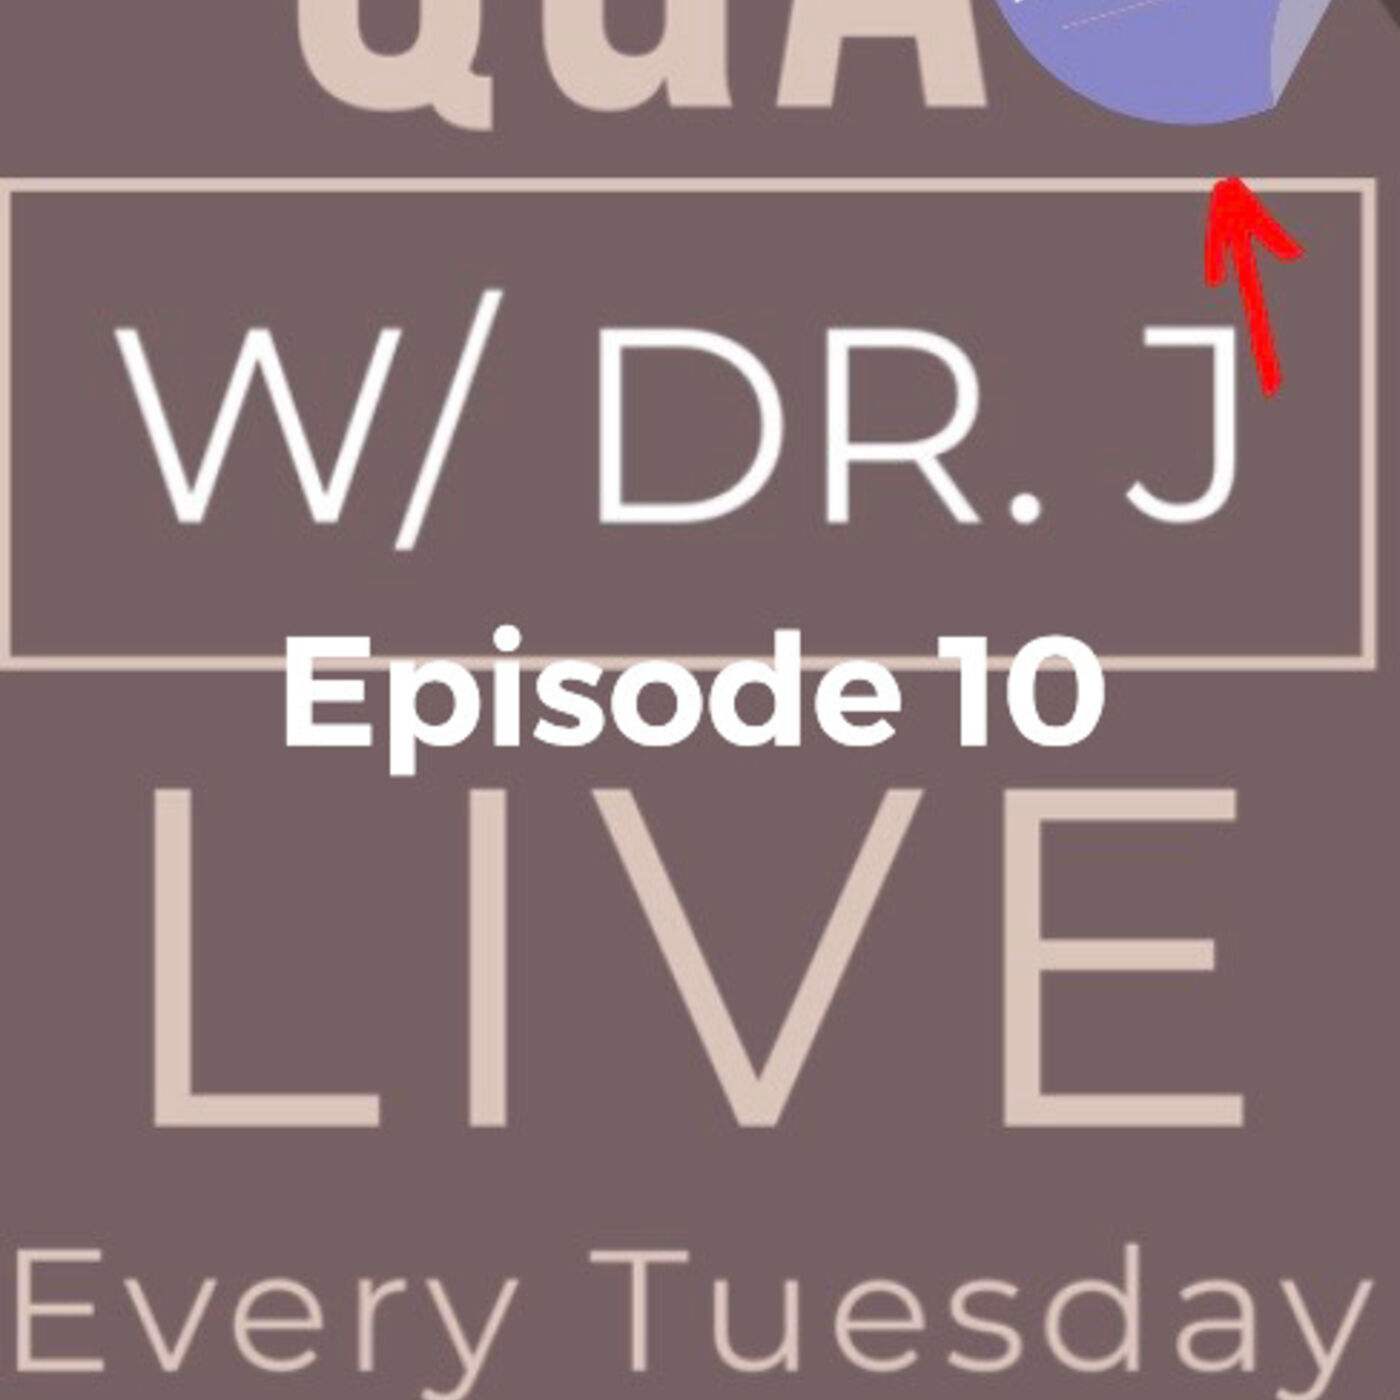 EP 10 Q&A with Dr J | What to eat after weight loss surgery | Dr Jeneby Questions and Answers